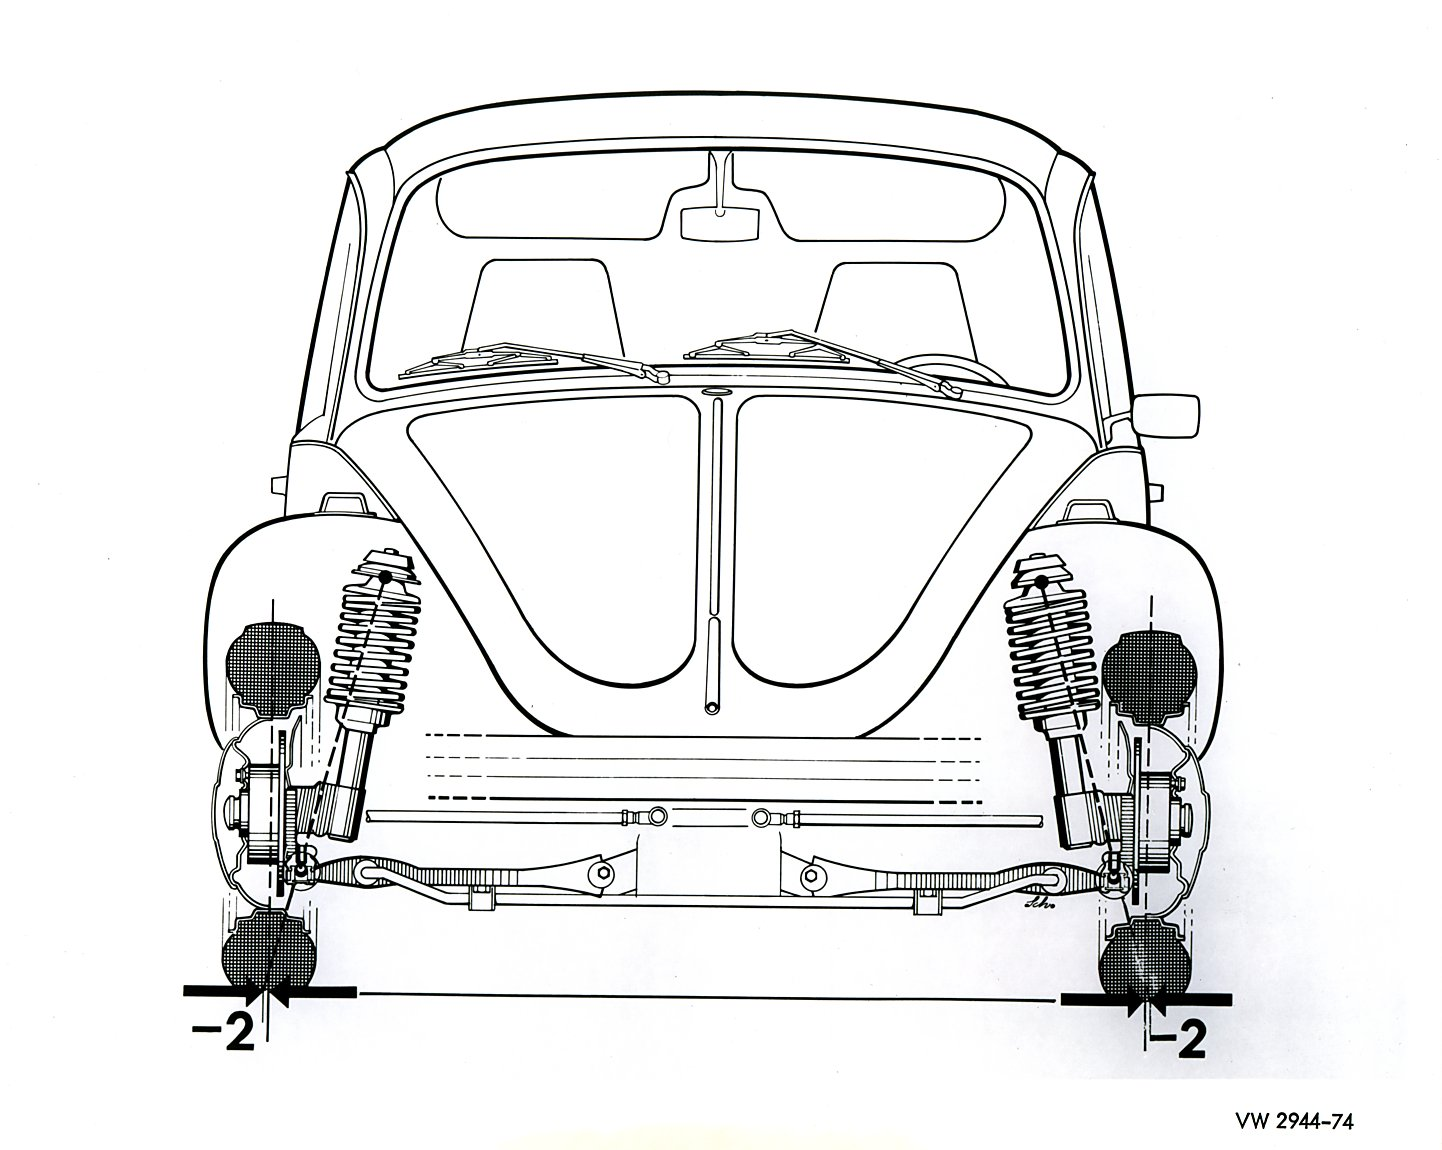 1000+ images about VW drawings on Pinterest